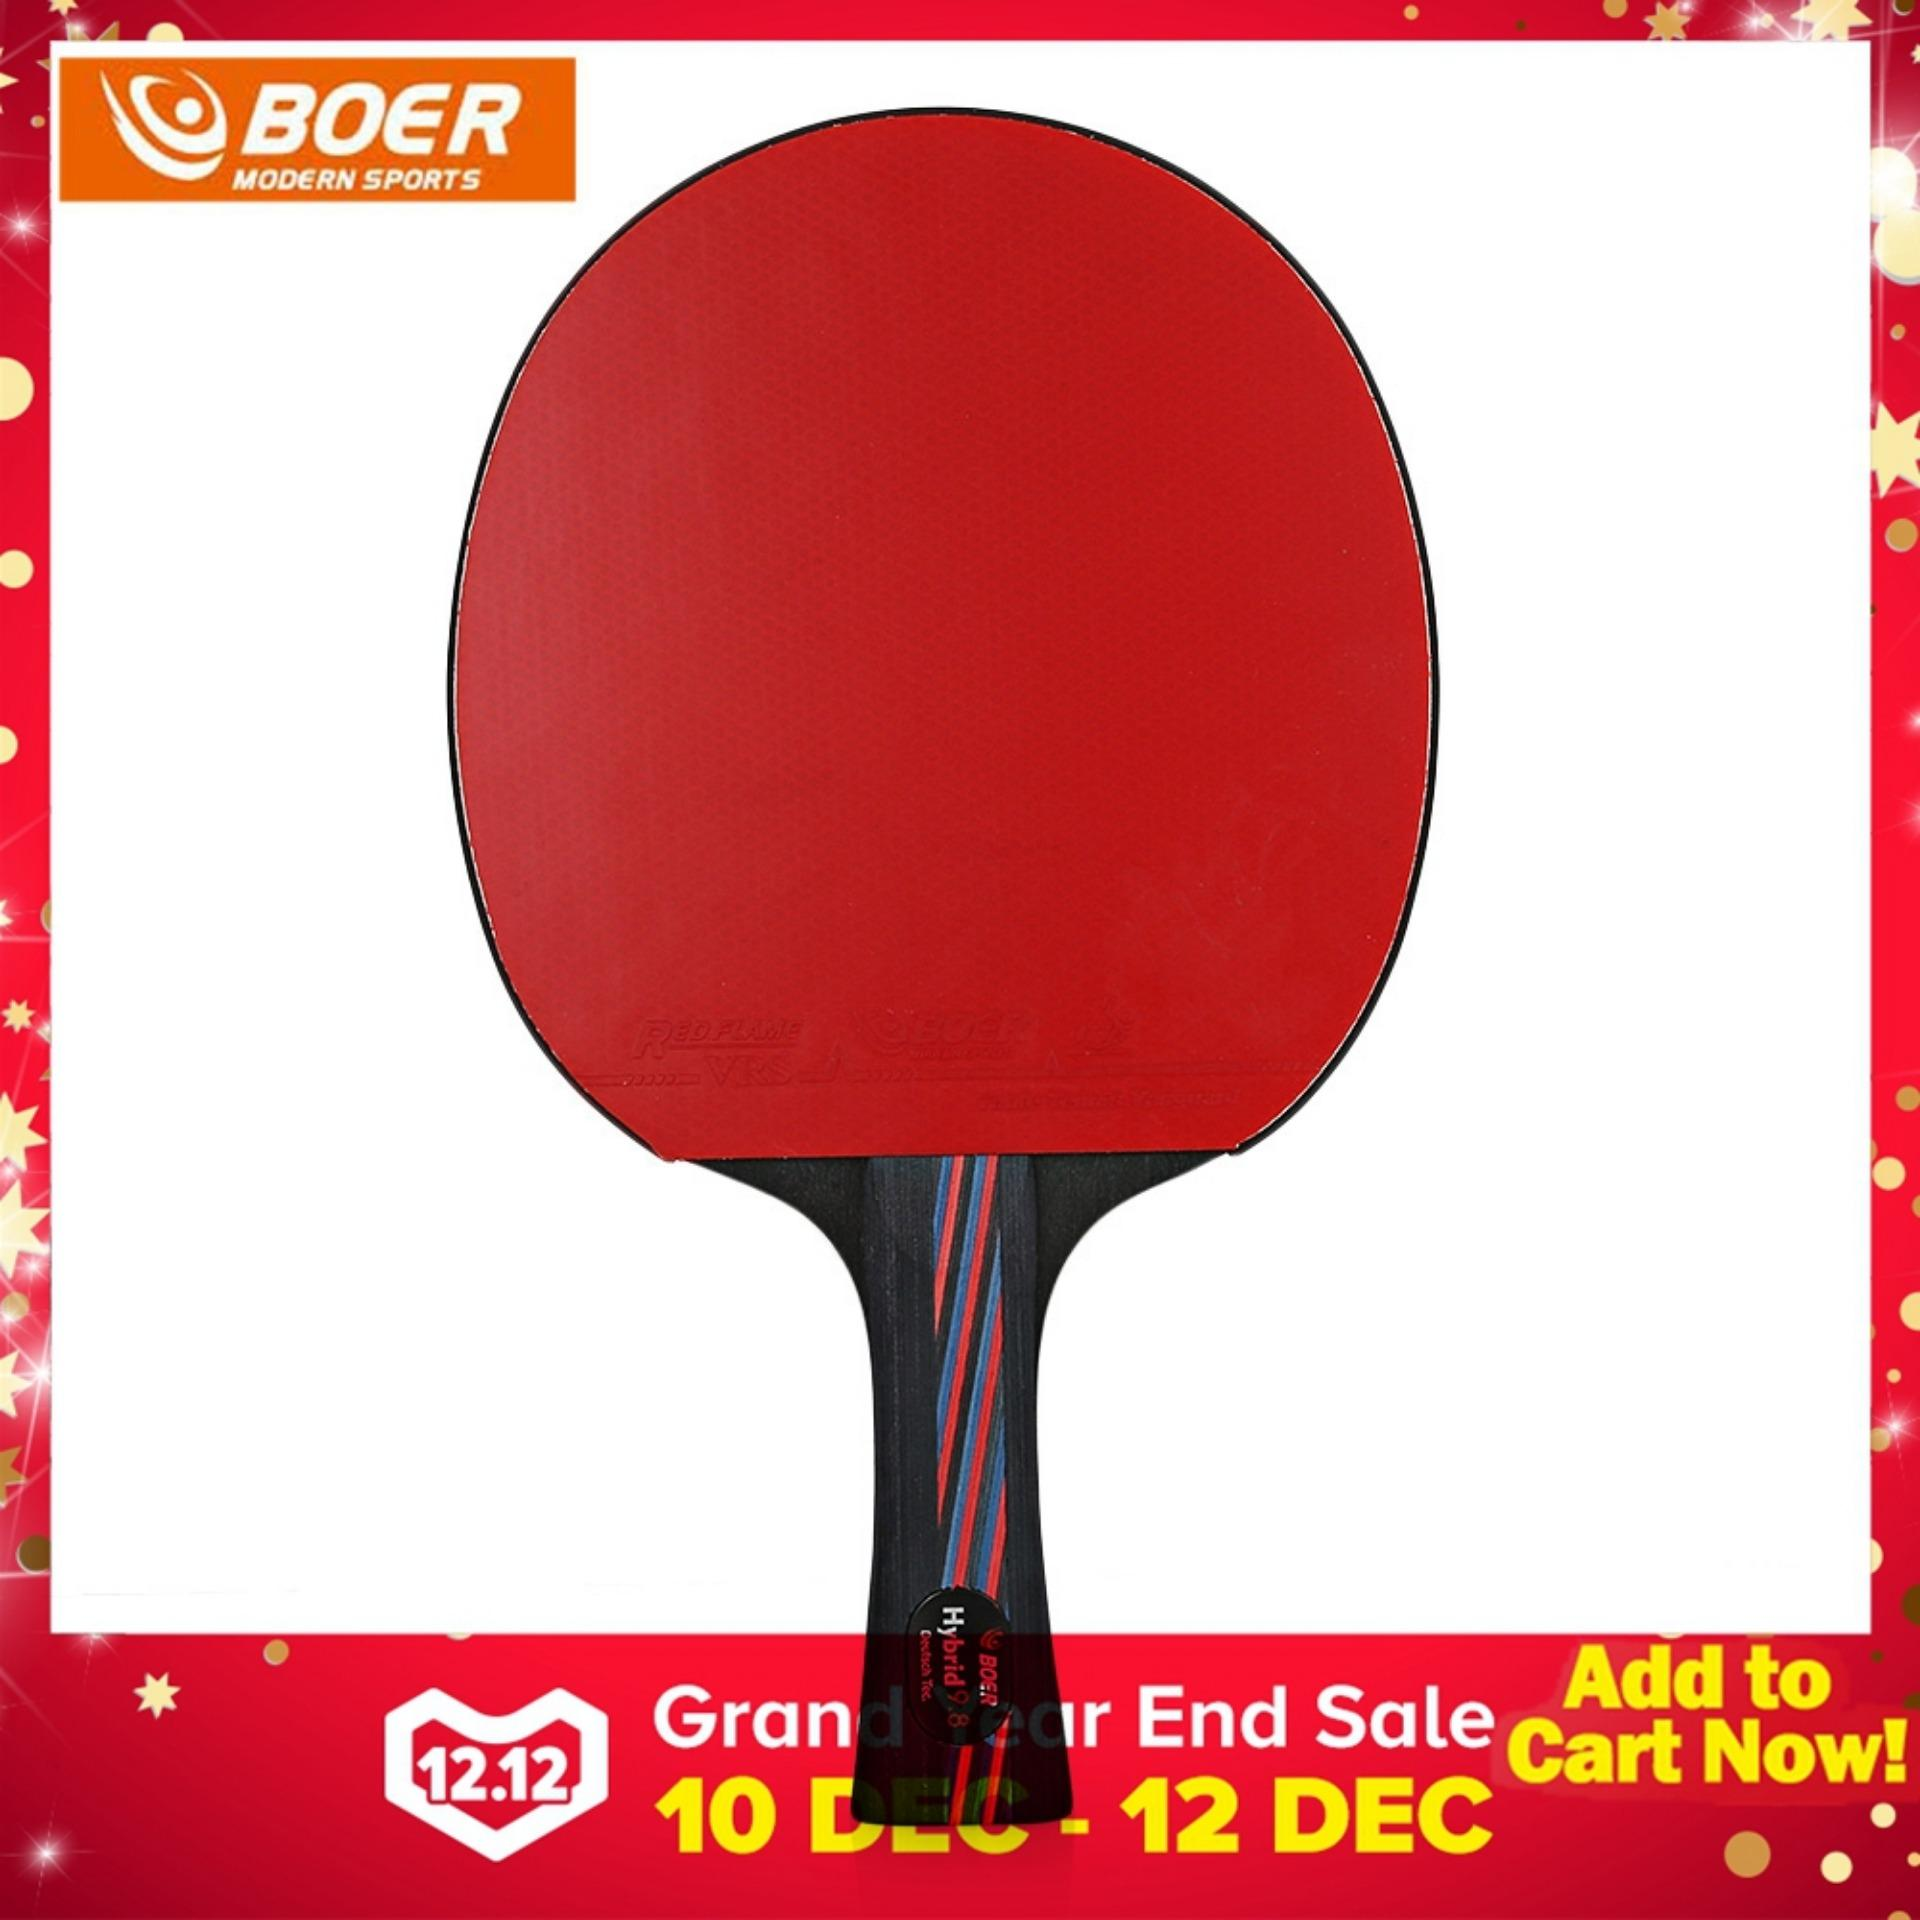 62147238eaf BOER Shake-hand Grip Outdoor Table Tennis Lightweight Ping Pong Racket  Paddle with Storing Bag